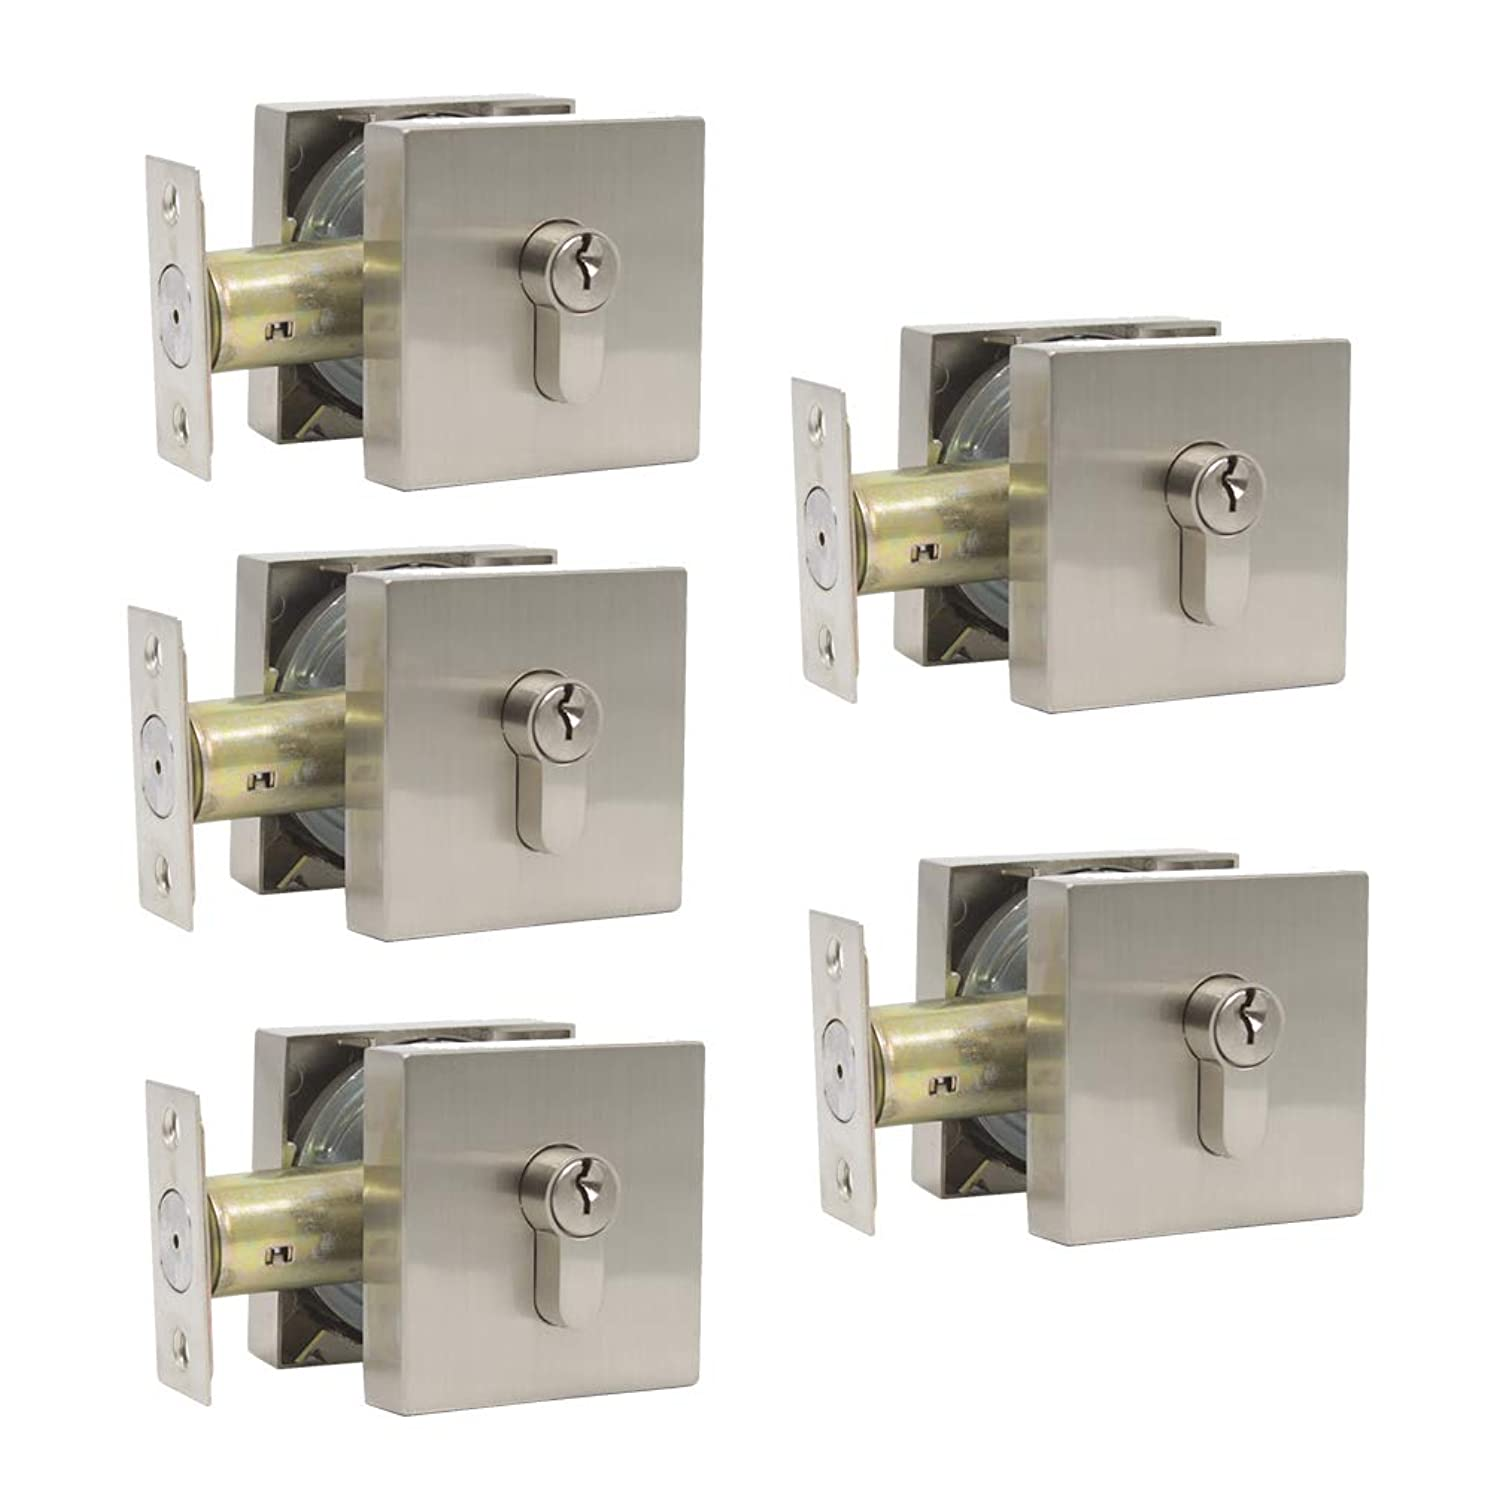 5 Pack Probrico Square Double Cylinder Deadbolt in Satin Nickel Interior Door Lockset Keyed Alike Same Key